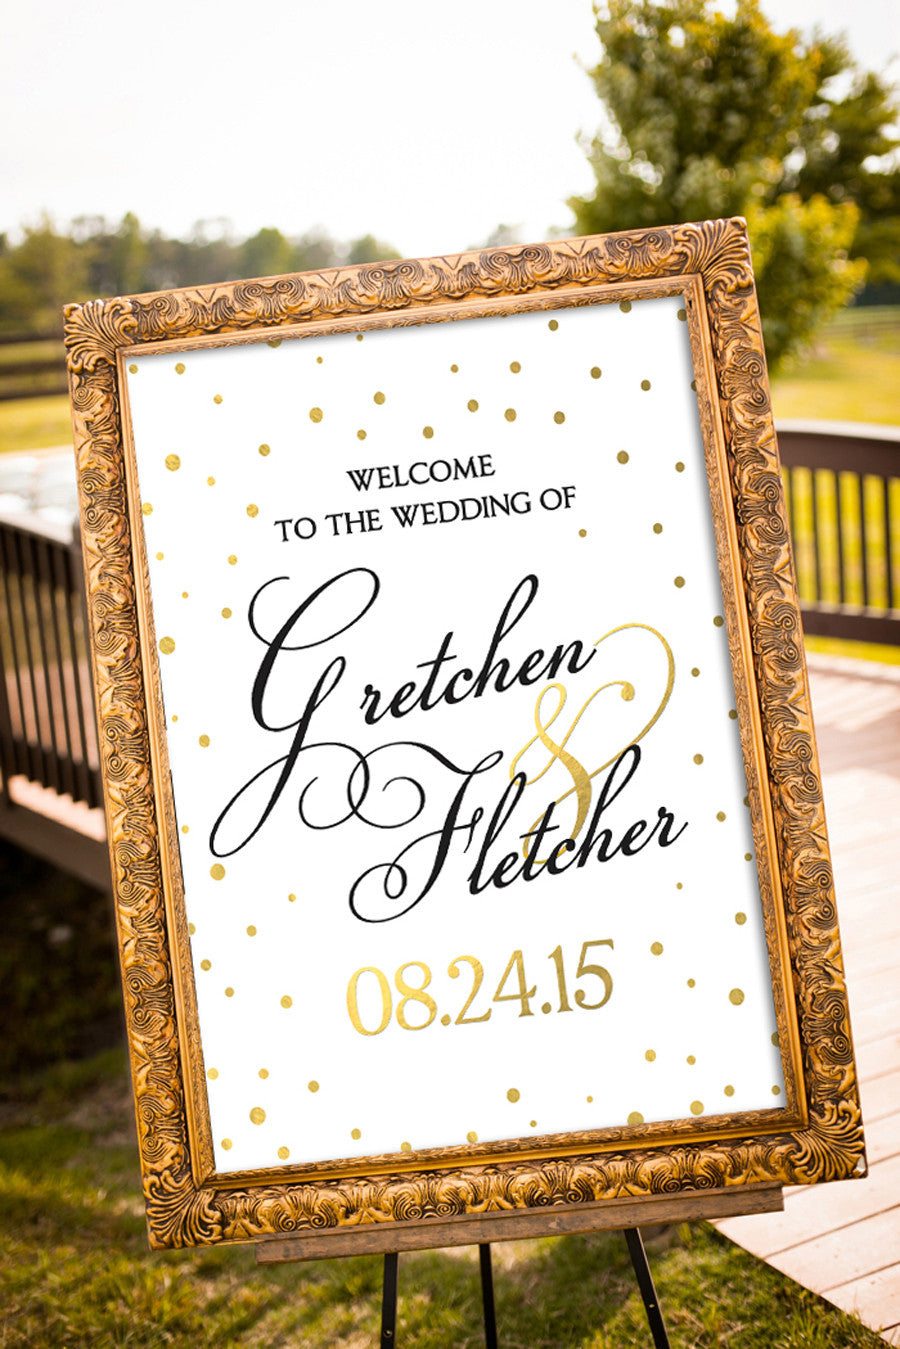 photograph regarding Wedding Signage Printable titled Printable Black and Gold Wedding ceremony Signs or symptoms - Confetti